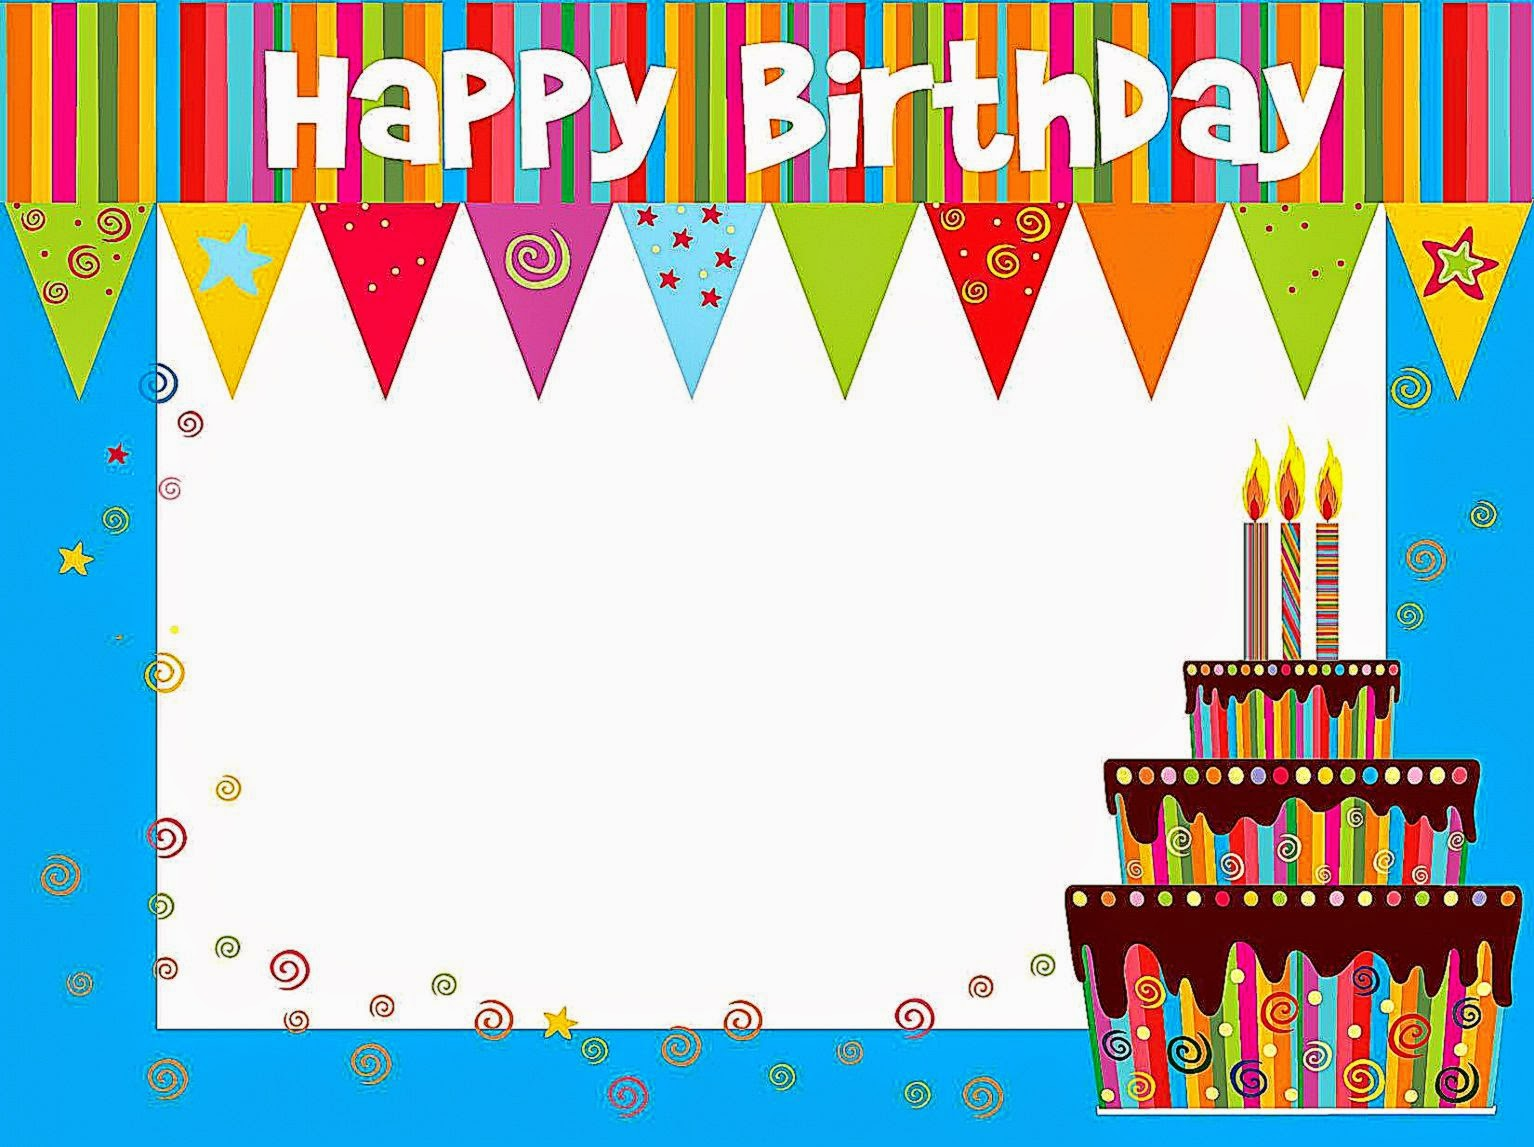 birthday card borders ; printable-happy-birthday-cards-modern-blue-border-colourfull-decoration-on-top-white-birthday-greeting-big-tart-white-text-area-where-you-can-write-your-wish